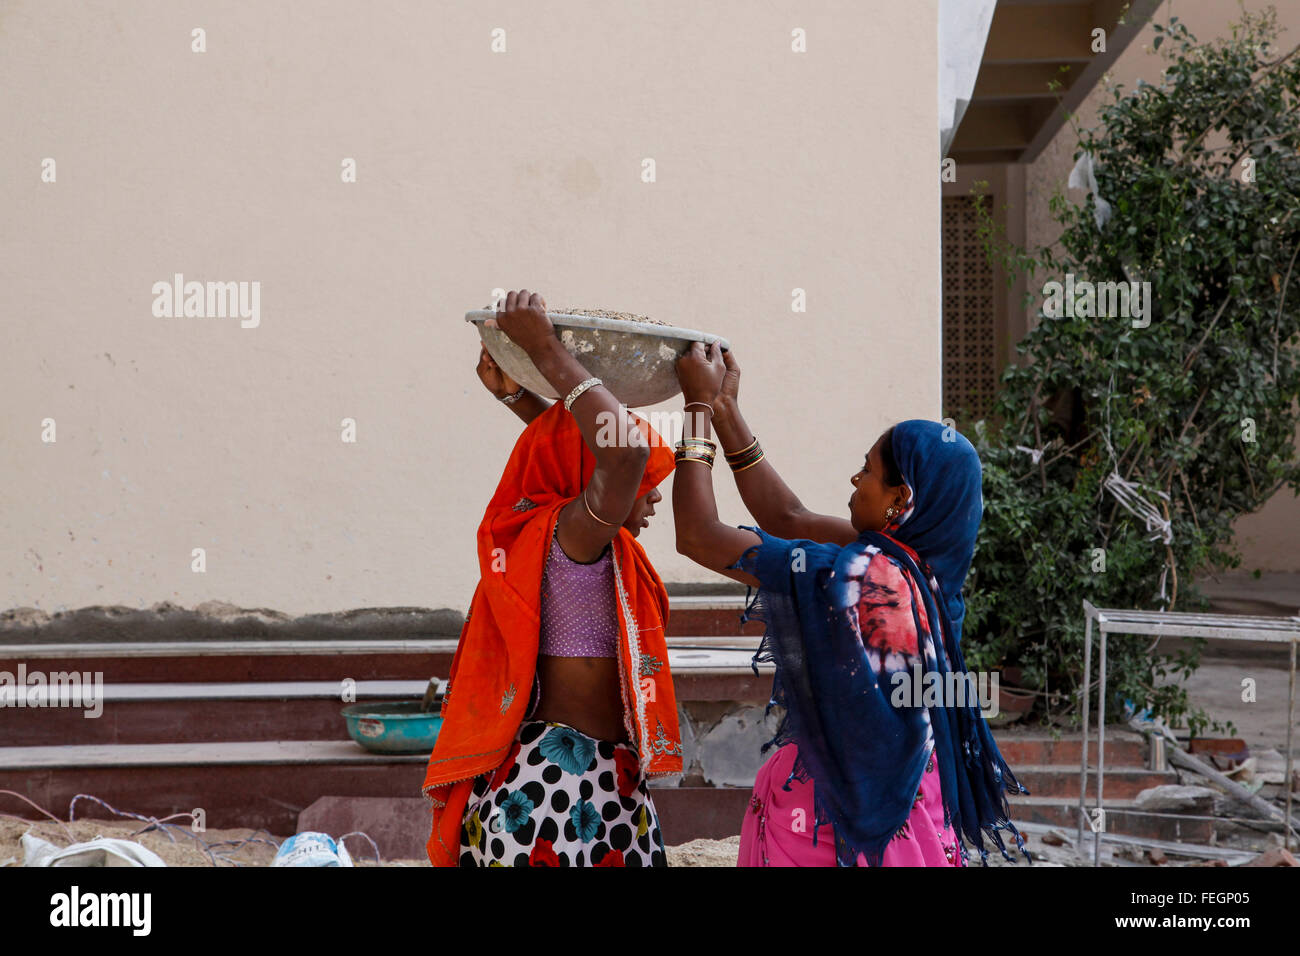 India's illiterate women working as laborers using their hands. - Stock Image